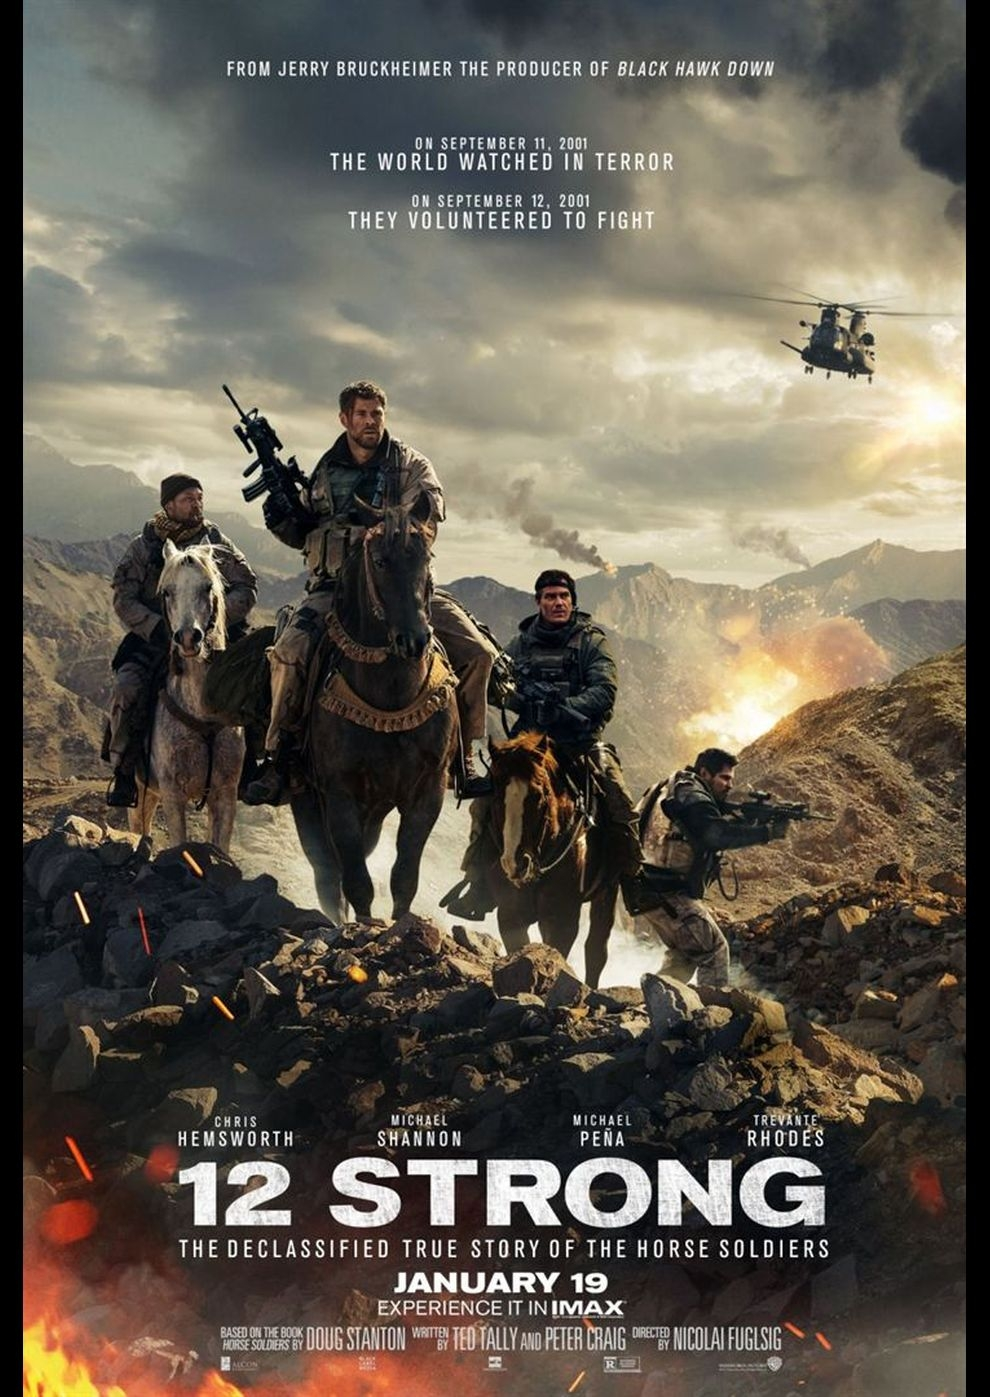 Operation: 12 Strong (Poster)